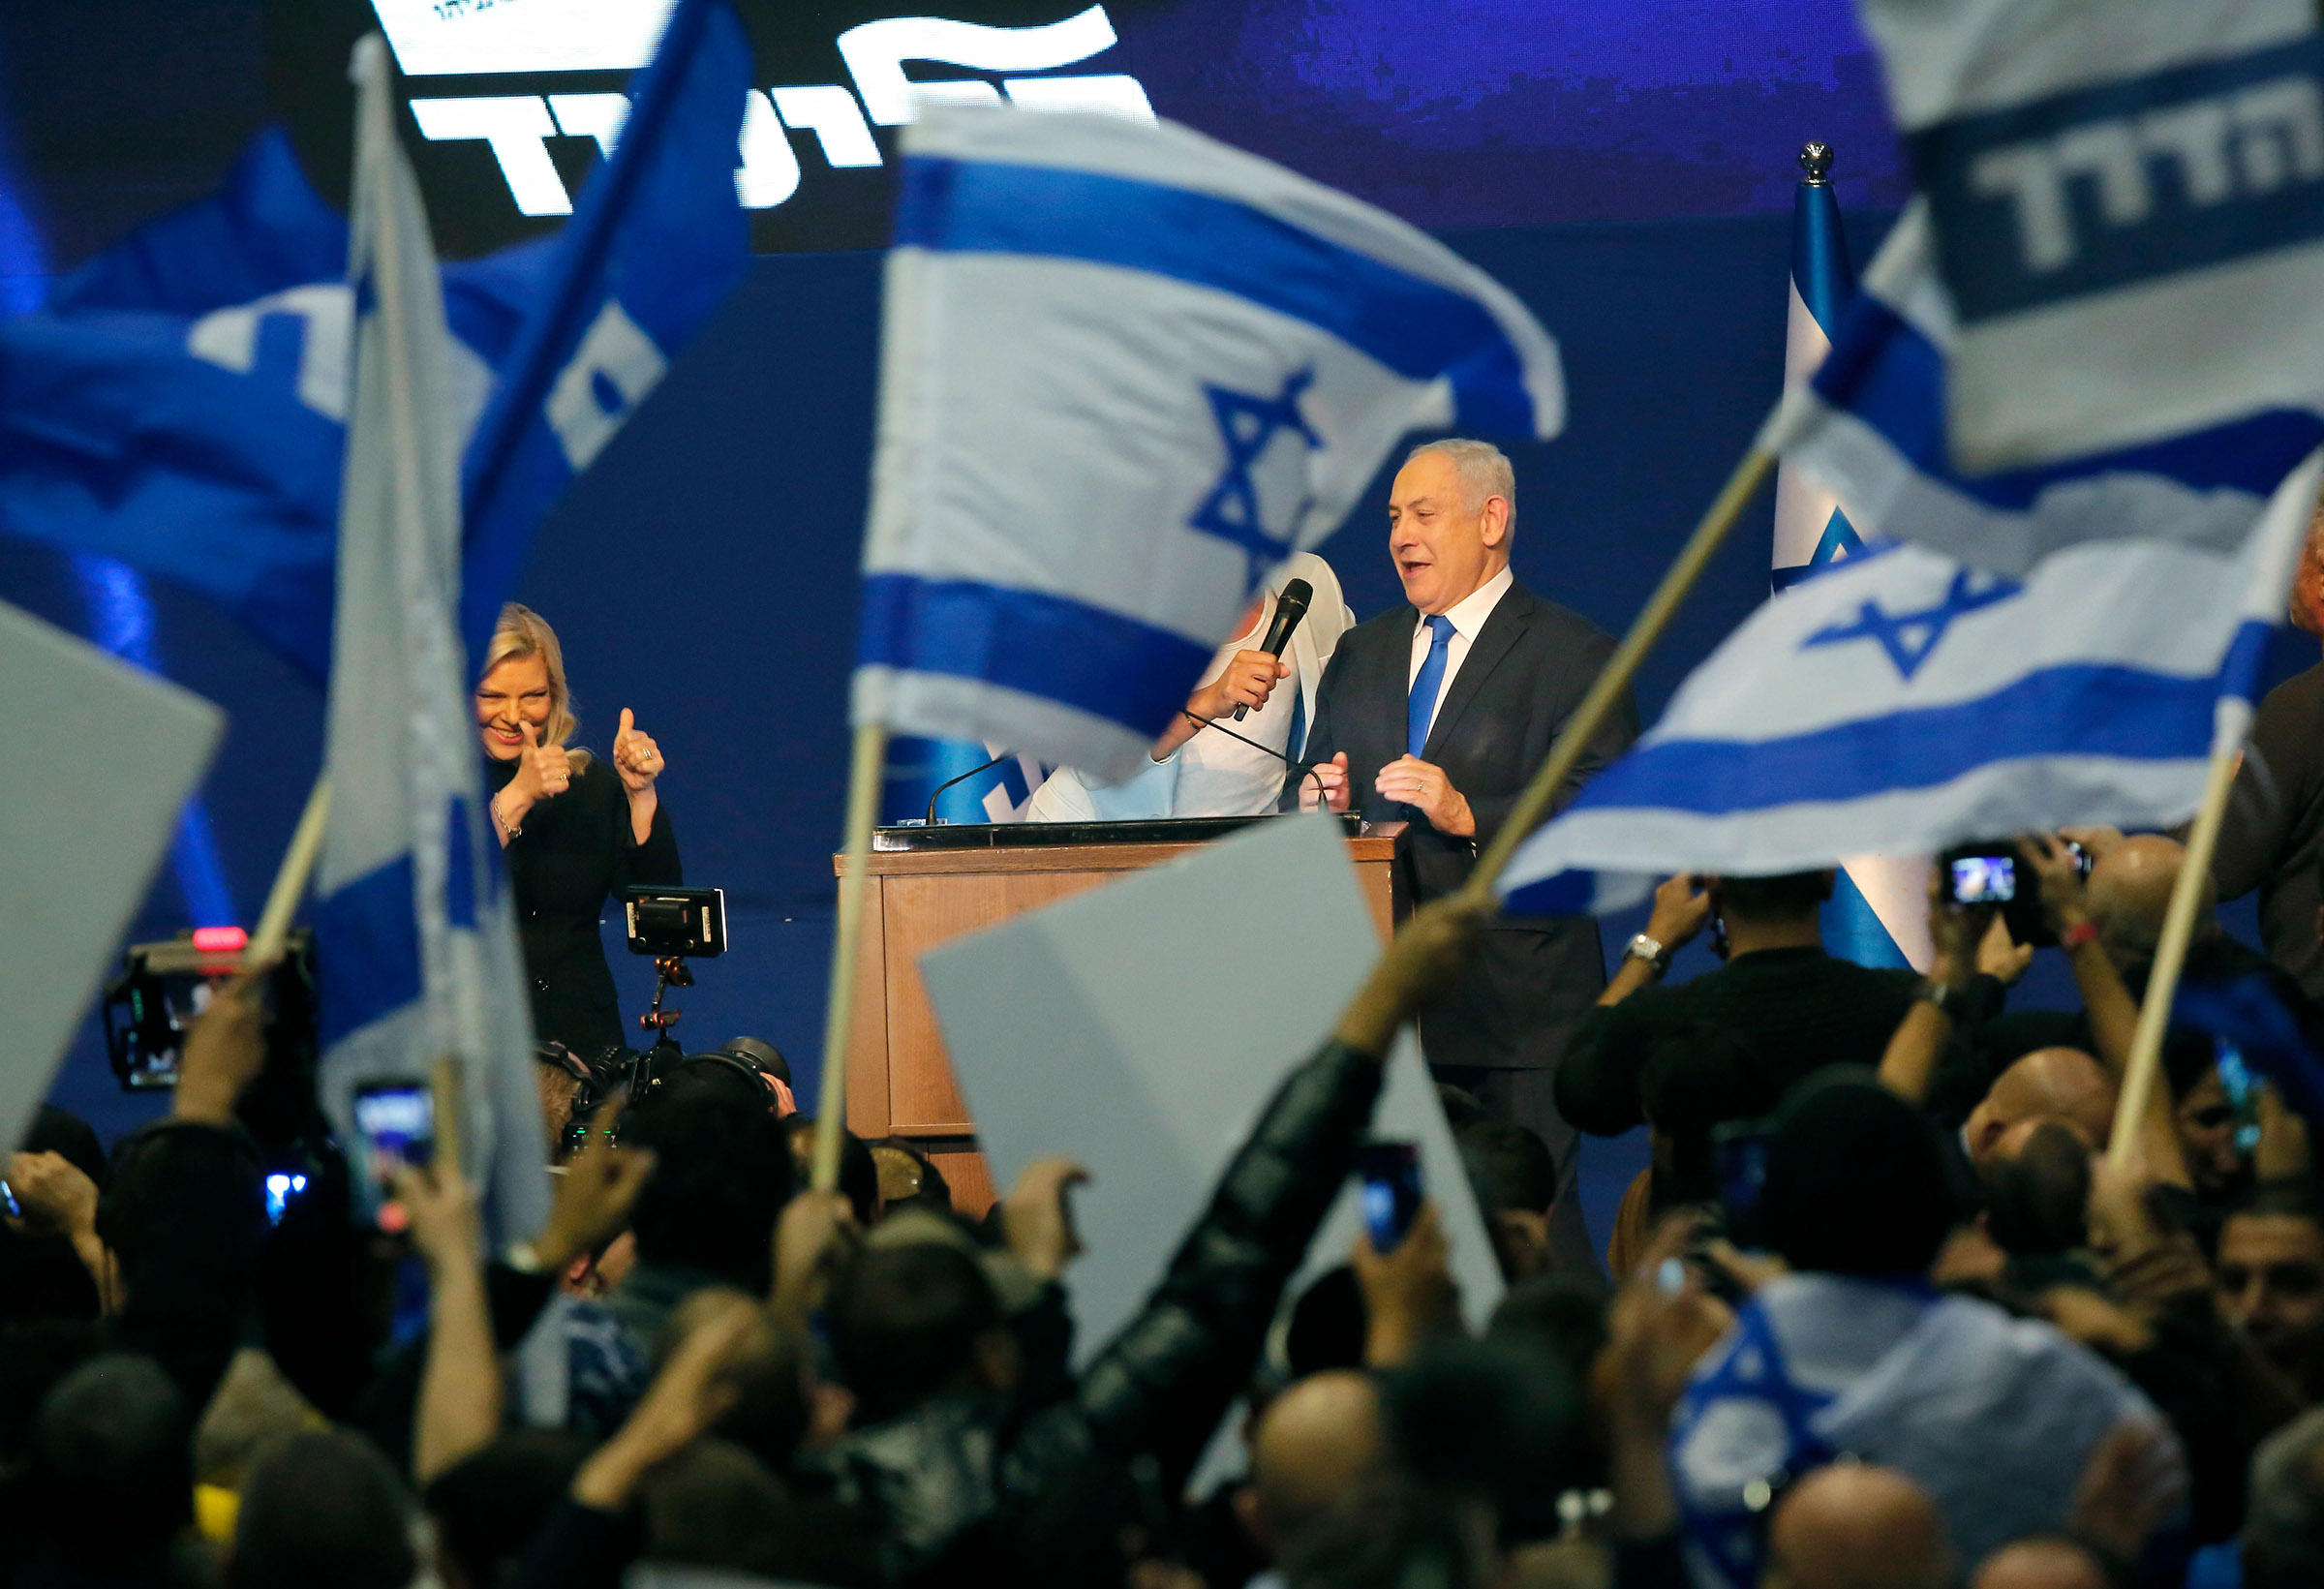 Prime Minister Benjamin Netanyahu and his wife appear before supporters at the Likud party campaign headquarters in the coastal city of Tel Aviv on March 3, 2020, after polls officially closed.